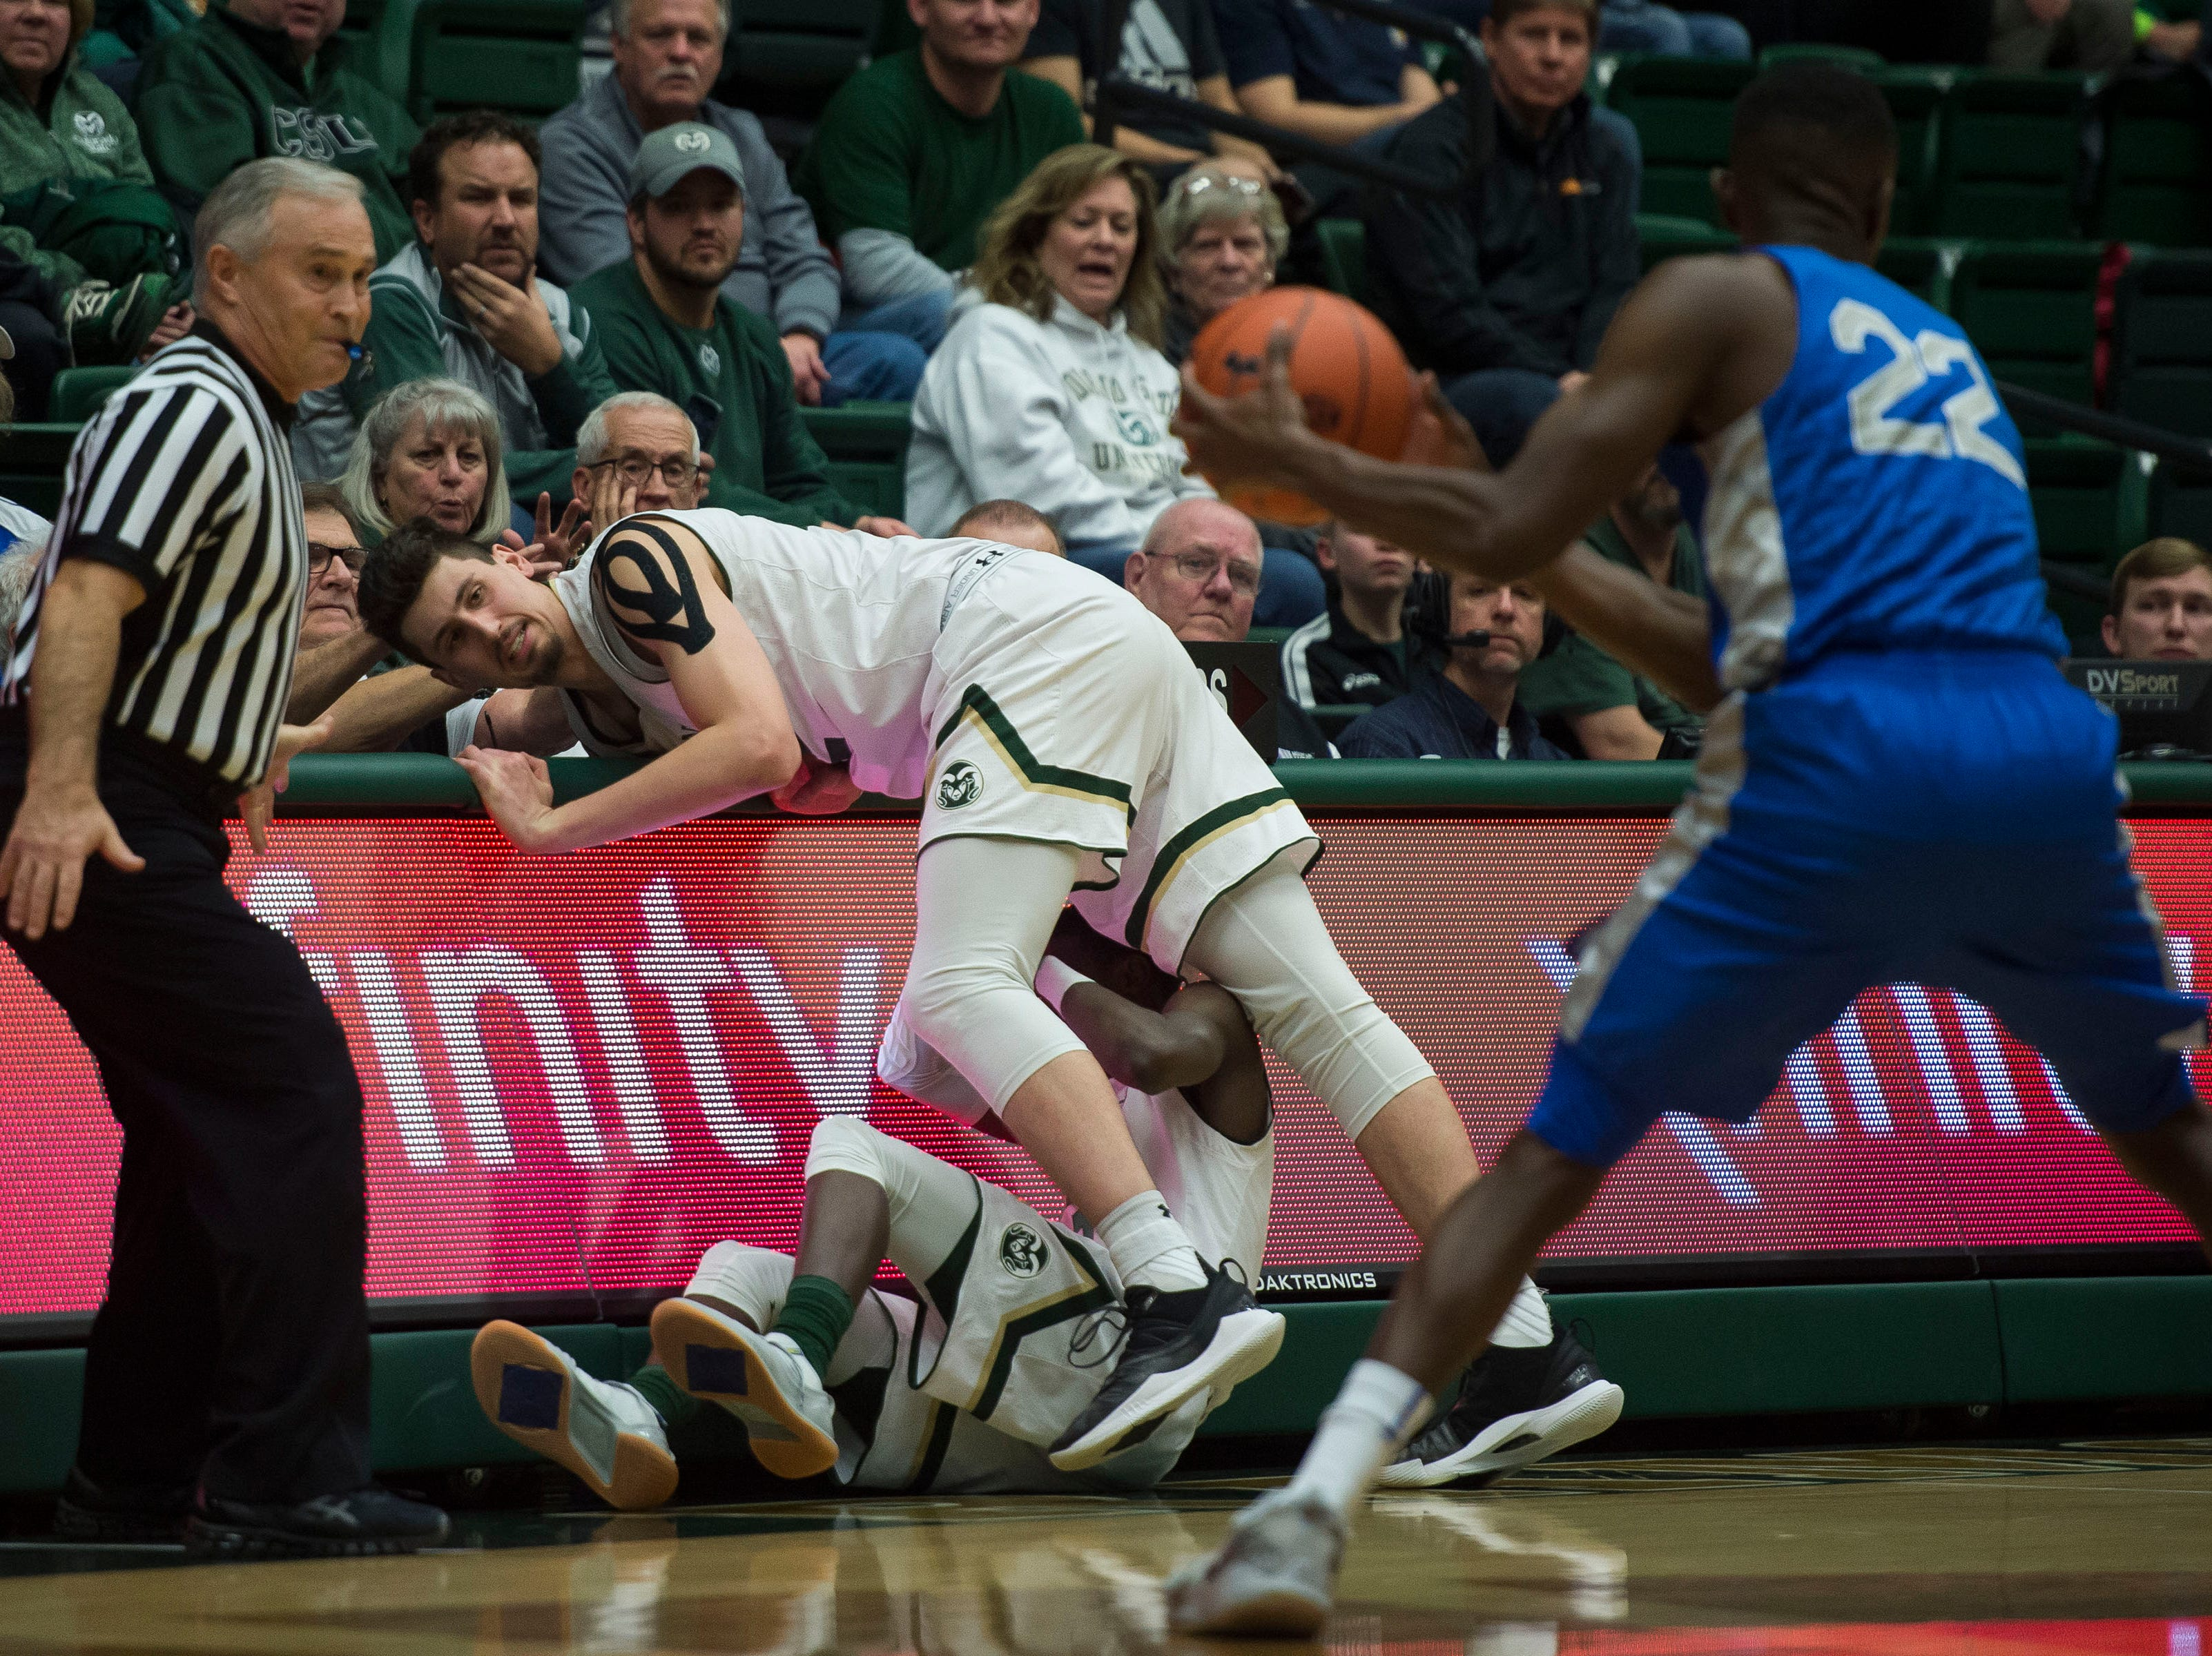 Colorado State University junior center Nico Carvacho (32) runs into freshman teammate Kendle Moore (3) after loosing control of the ball to Air Force Academy senior guard Pervis Louder (22) on Tuesday, Jan. 8, 2019, at Moby Arena in Fort Collins, Colo.